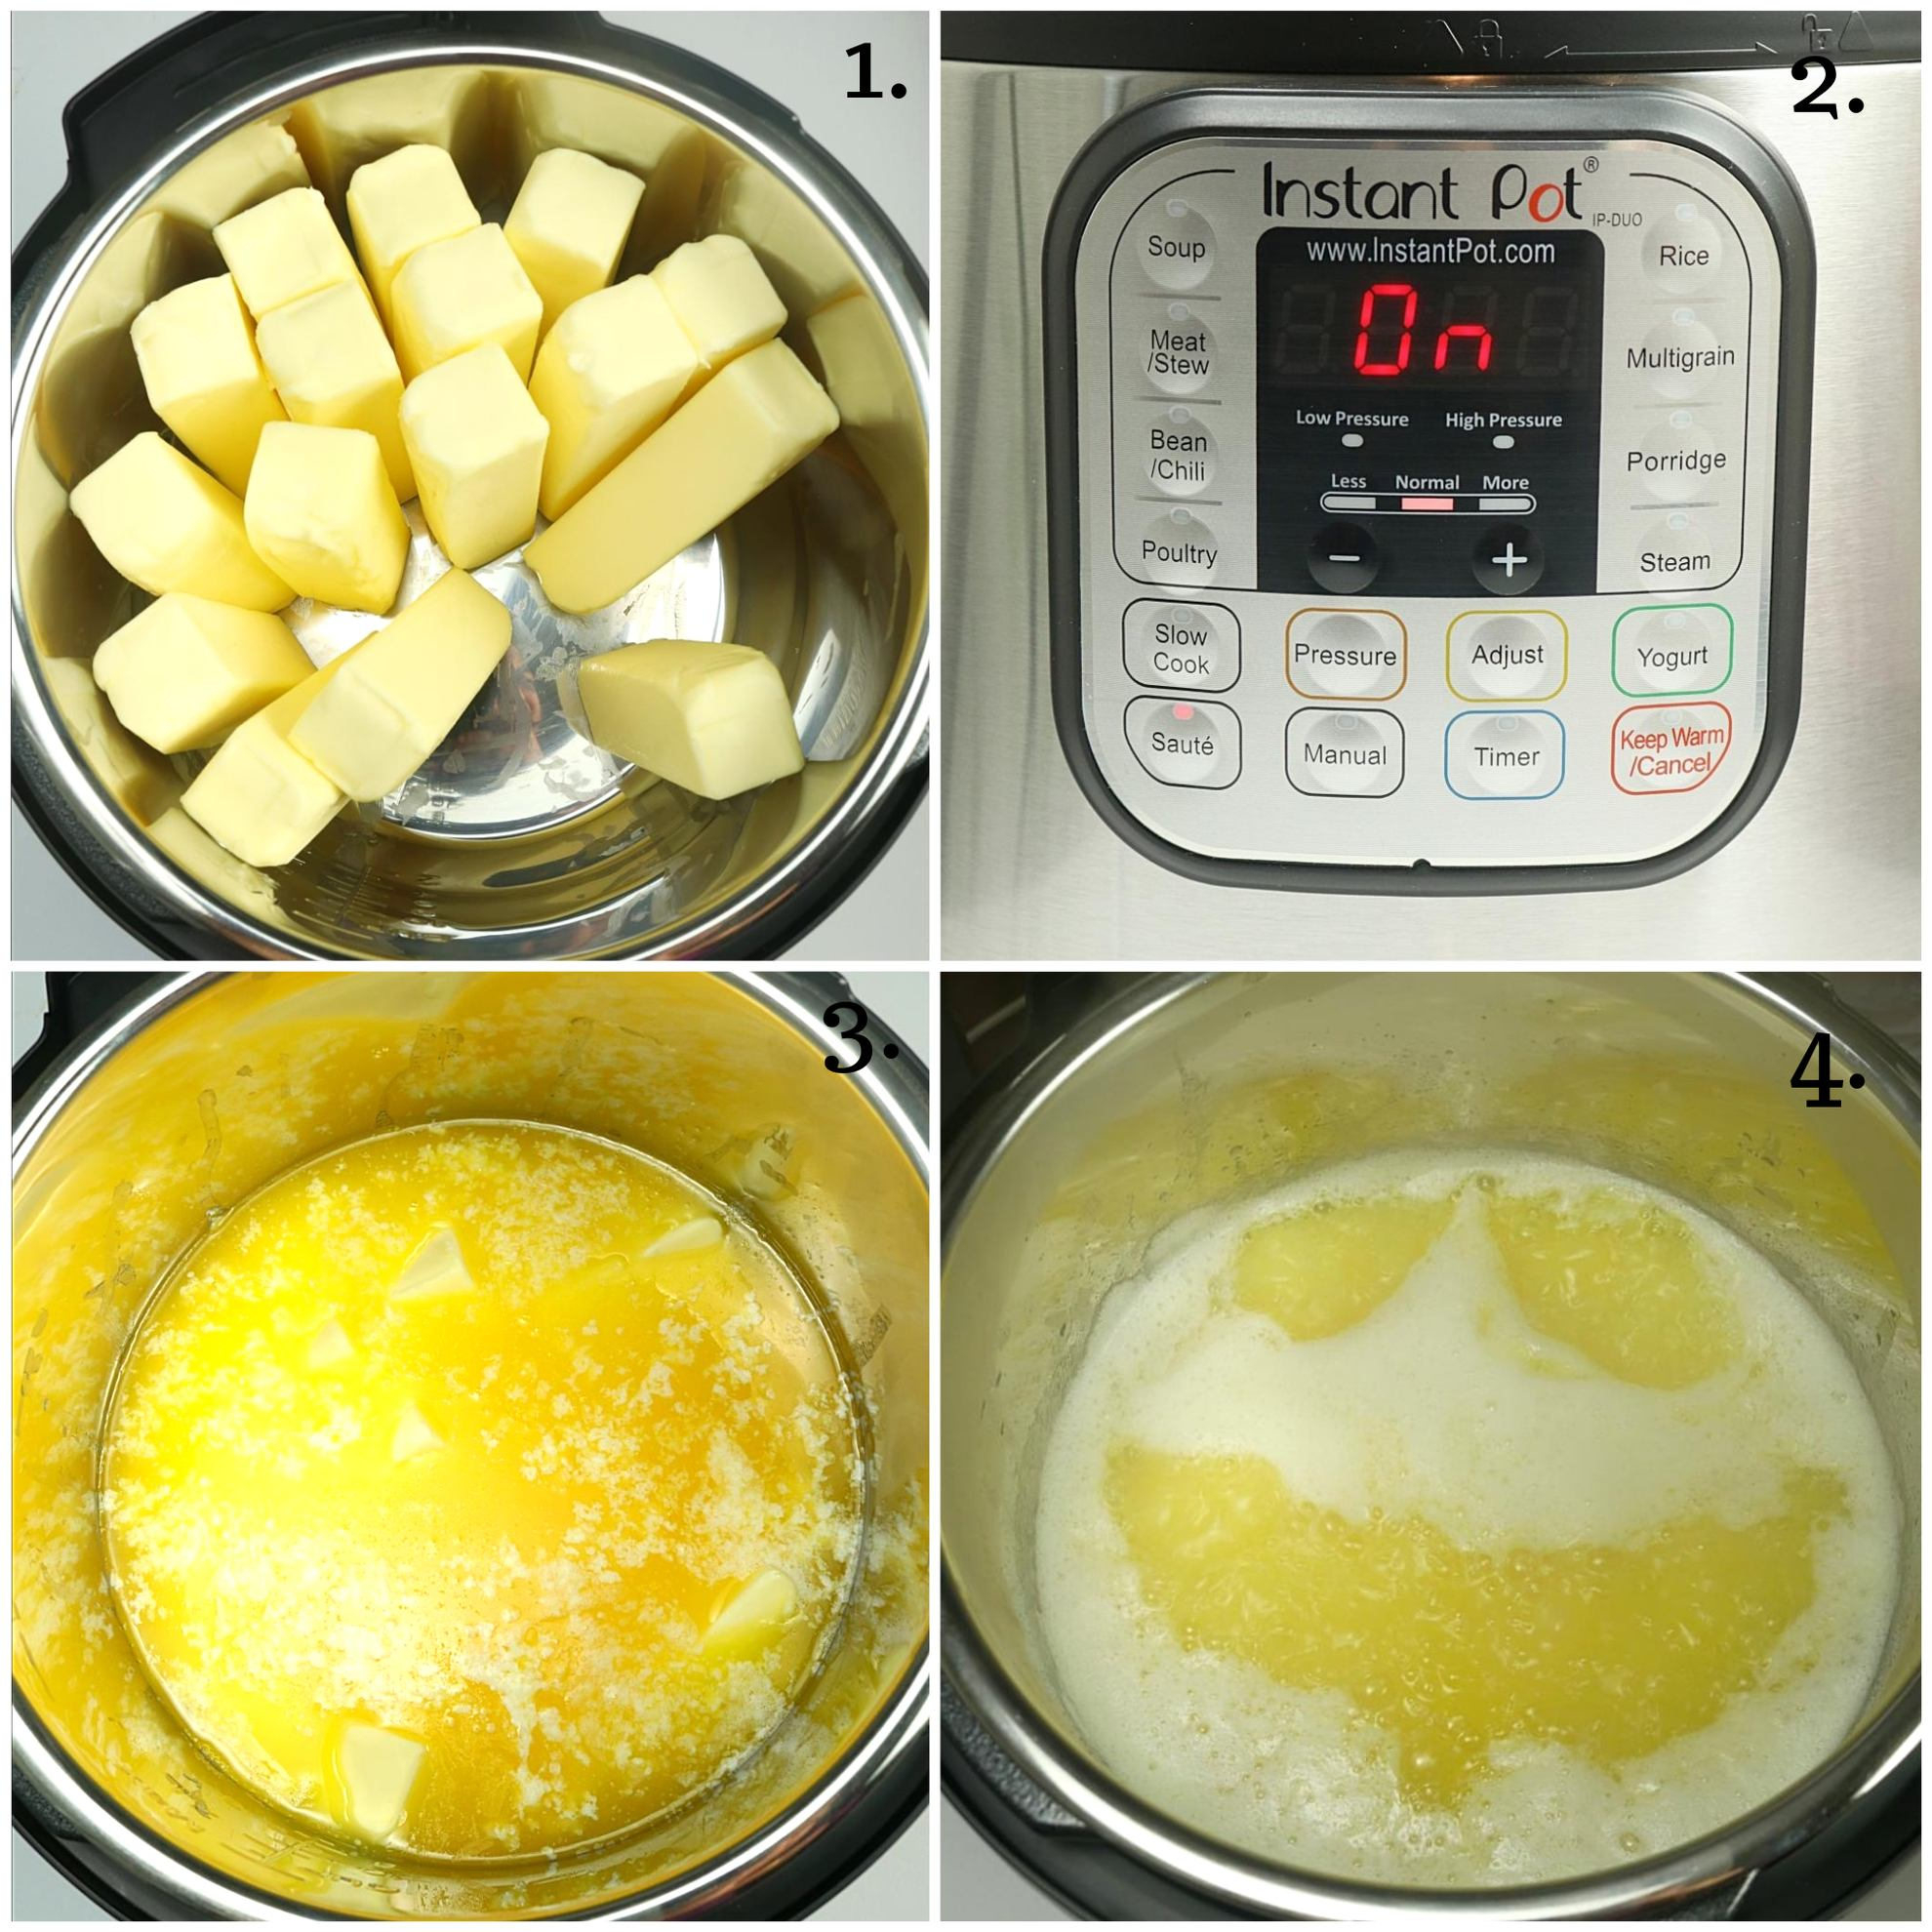 Ghee being cooked in Instant Pot